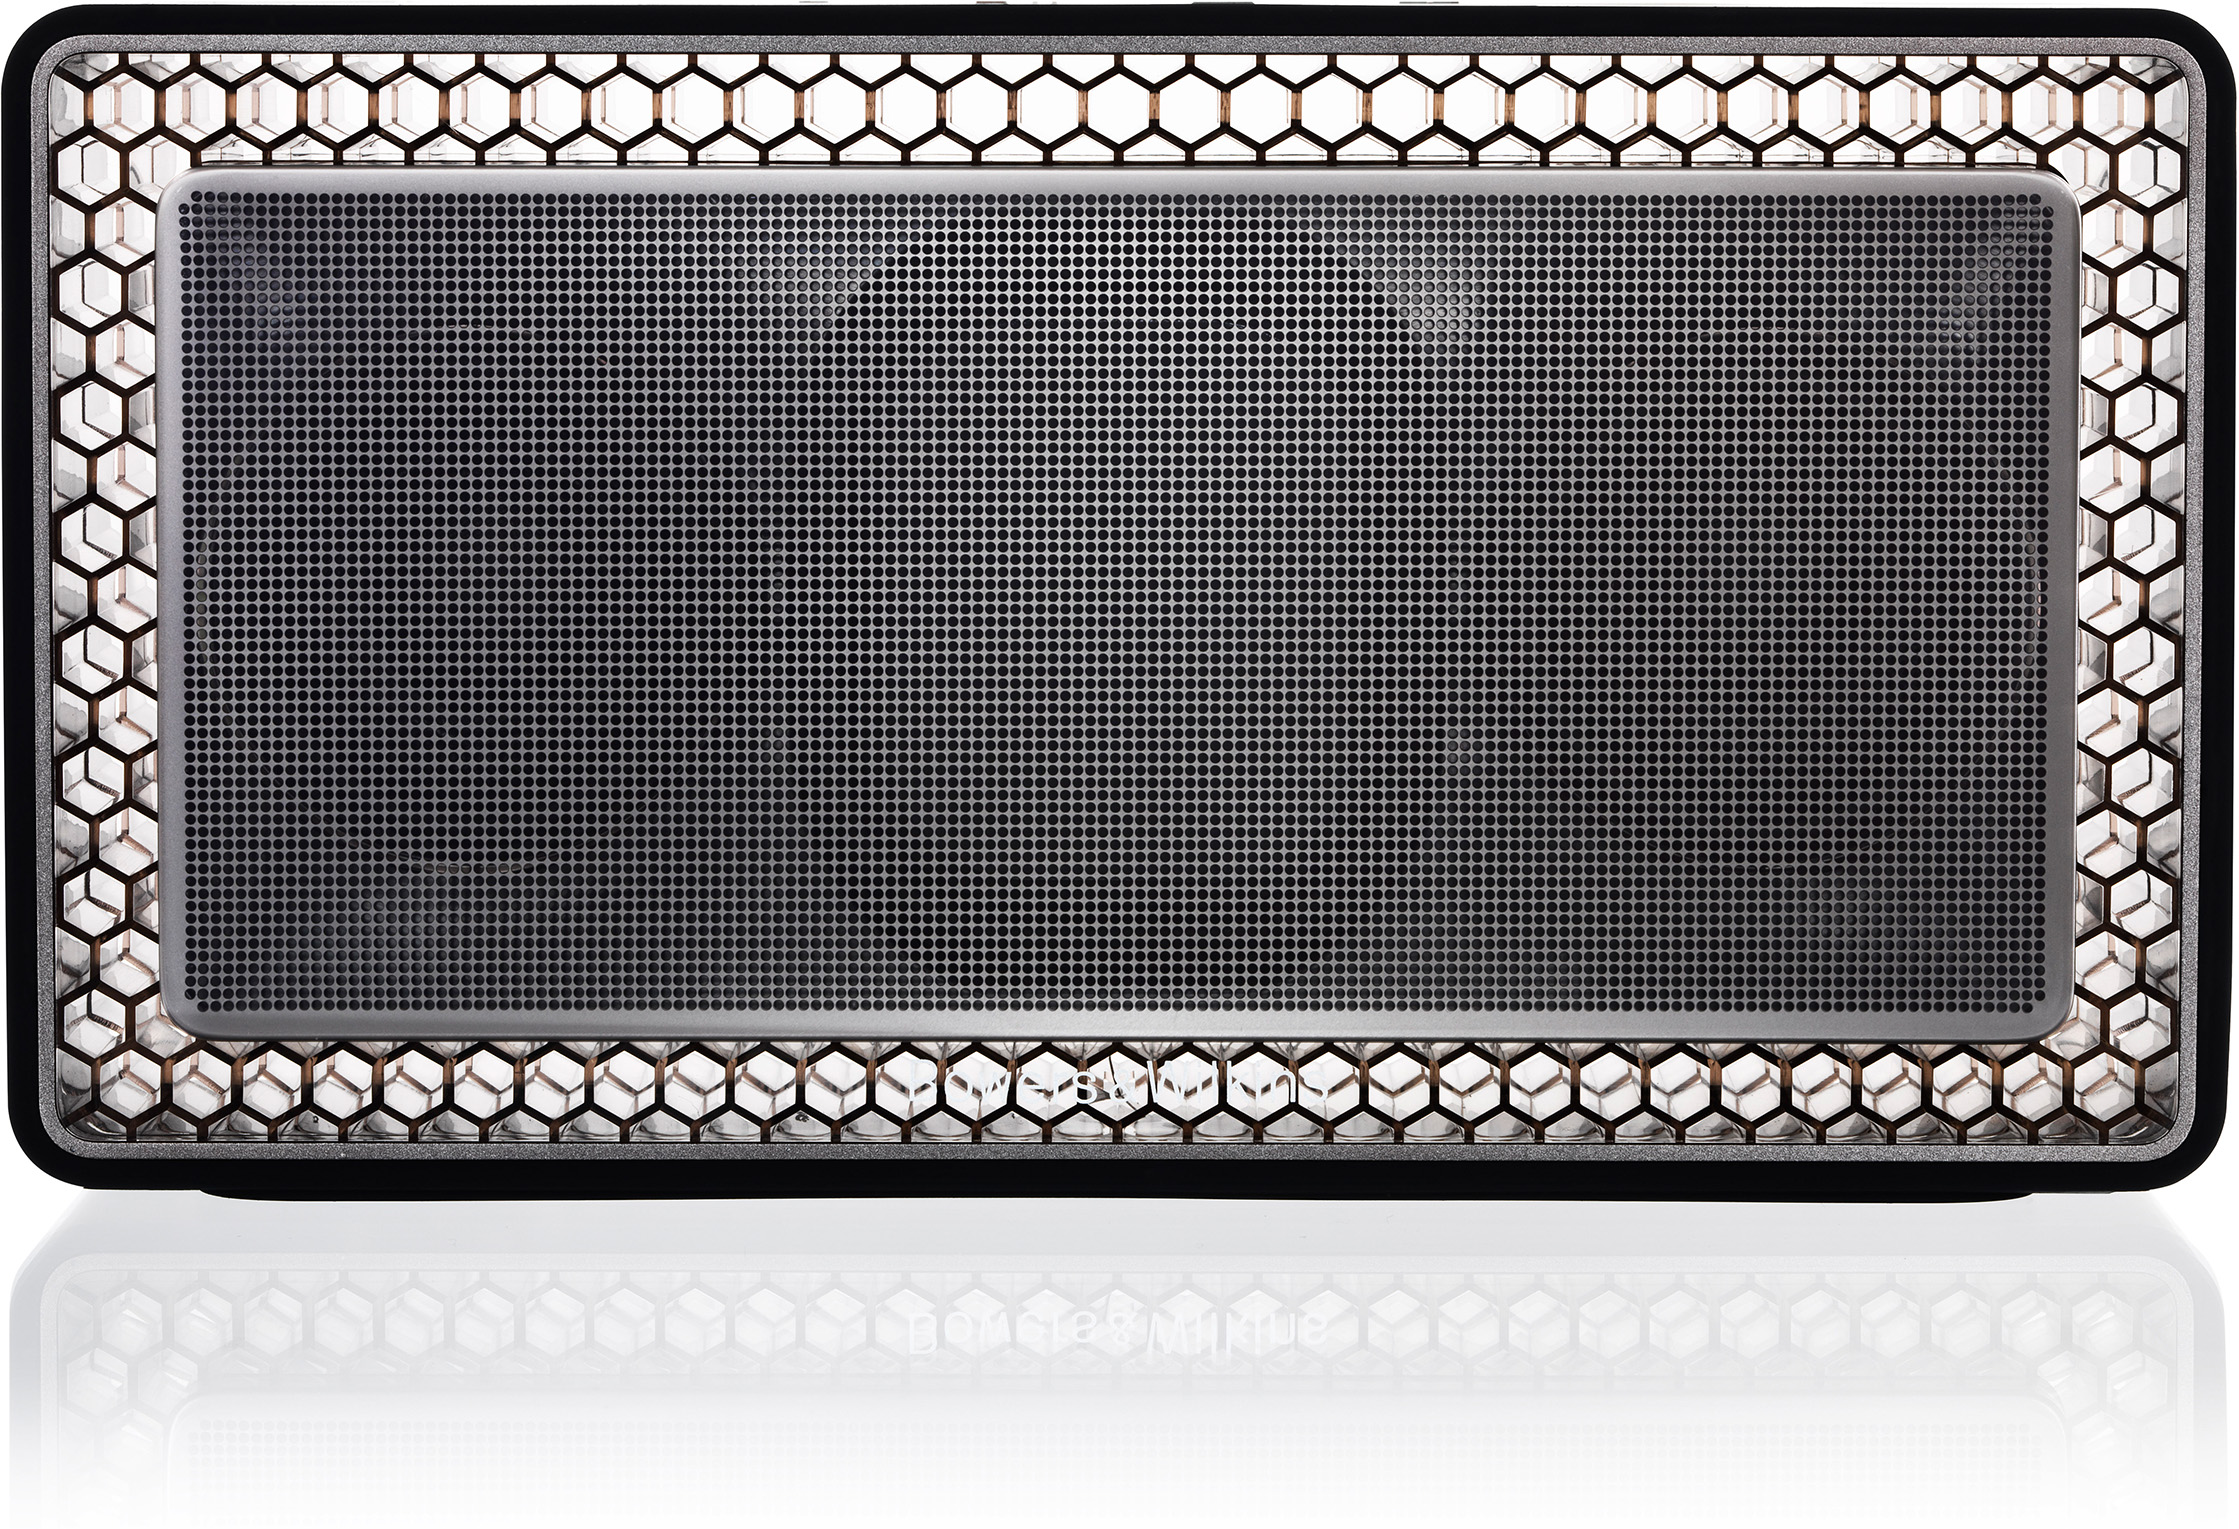 Altavoz inalámbrico y con Bluetooth Bowers & Wilkins T7